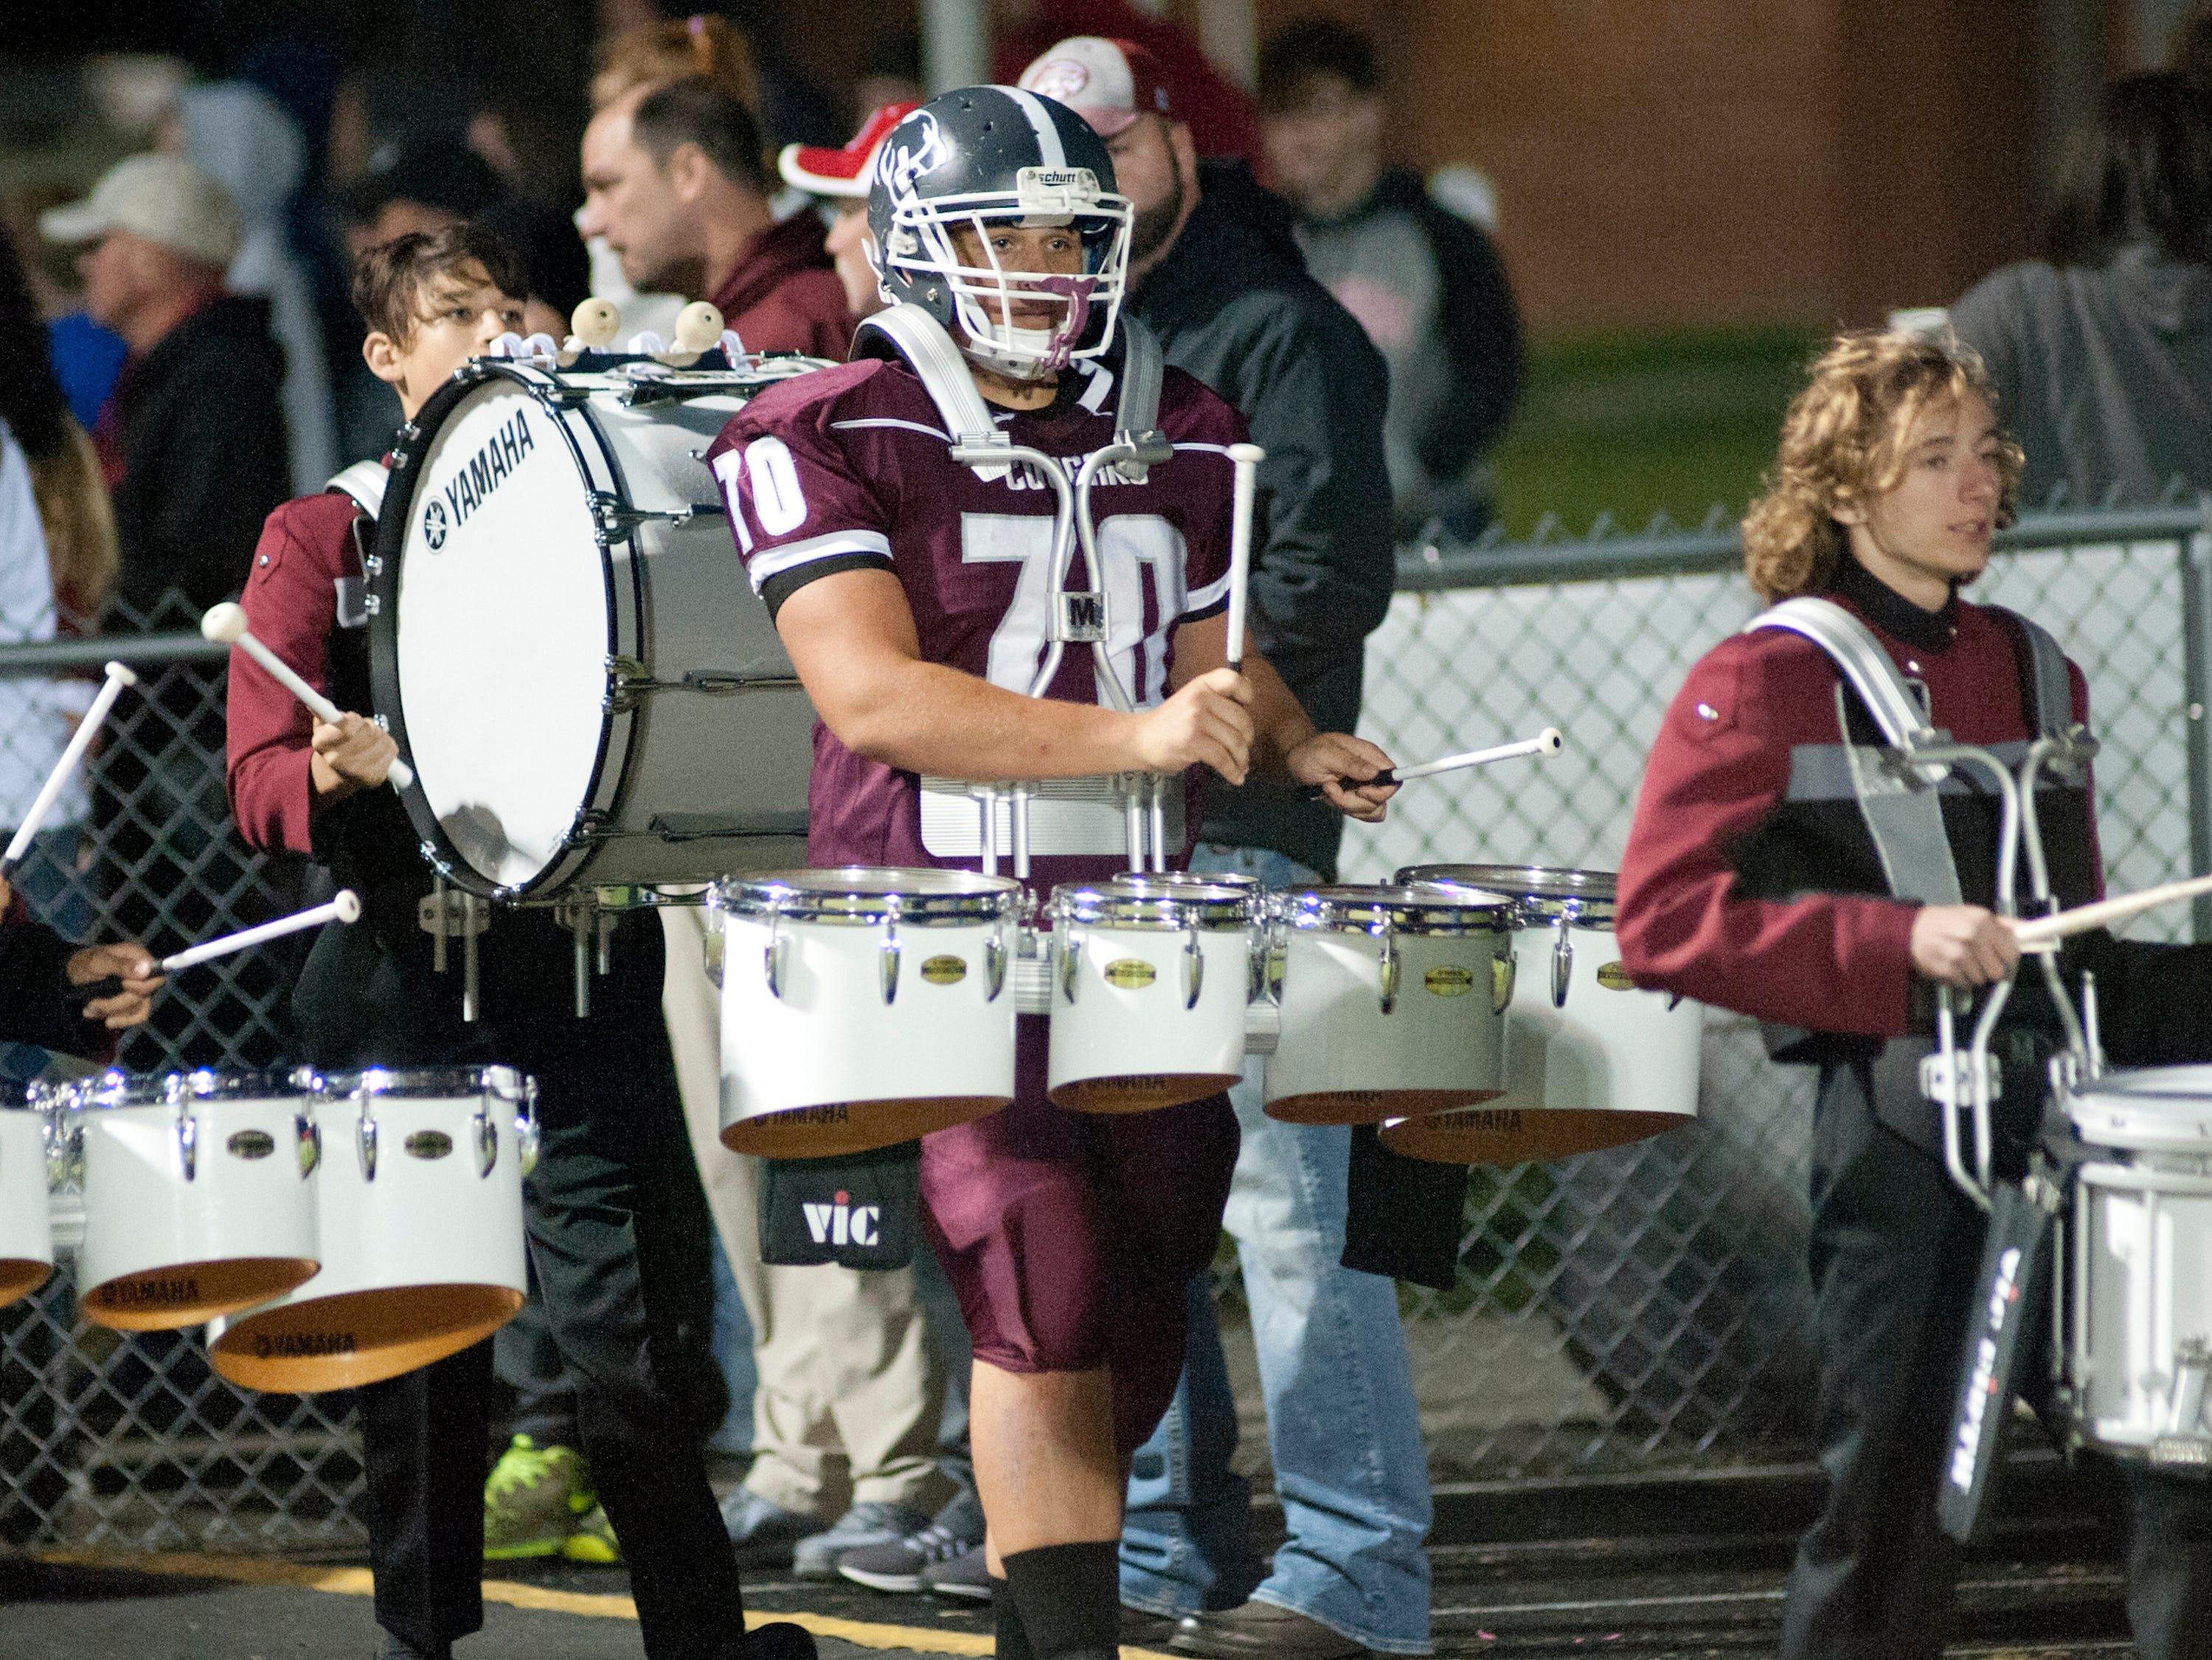 Bullitt Central offensive lineman Kaleb Adams plays the drums in the school marching band as they lead the team onto the field. Oct. 12, 2018